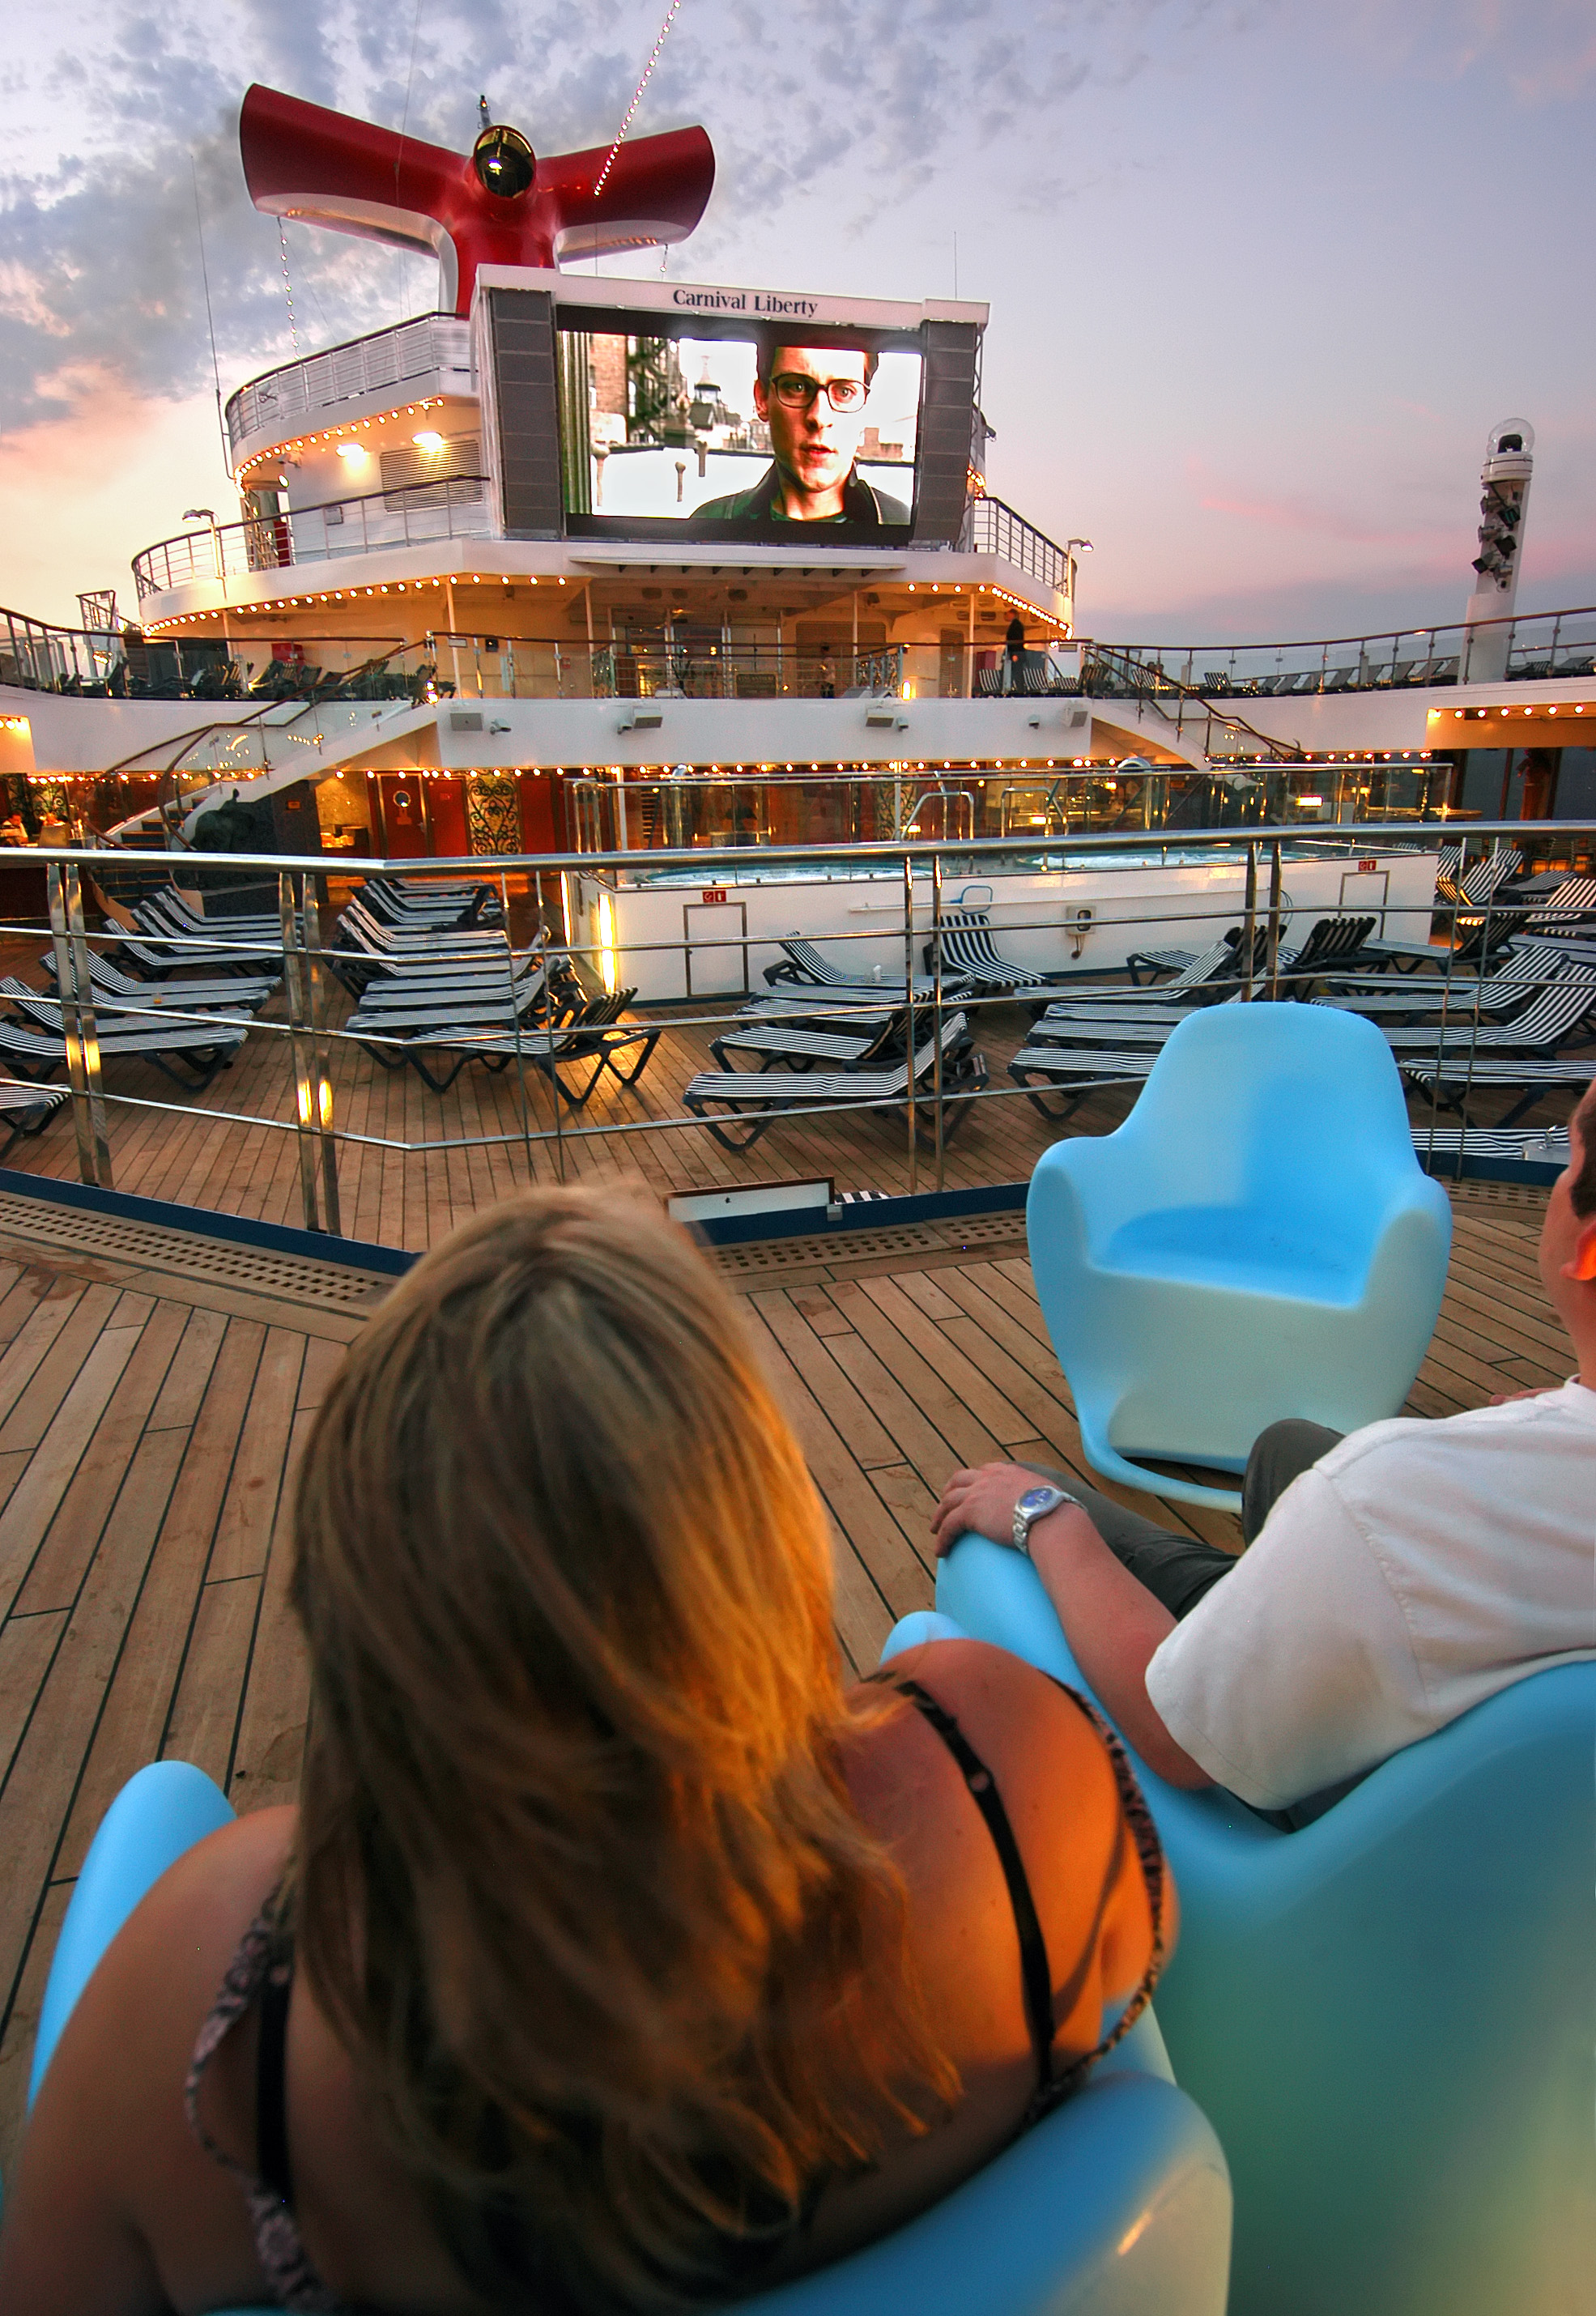 What To Do On Carnival Liberty